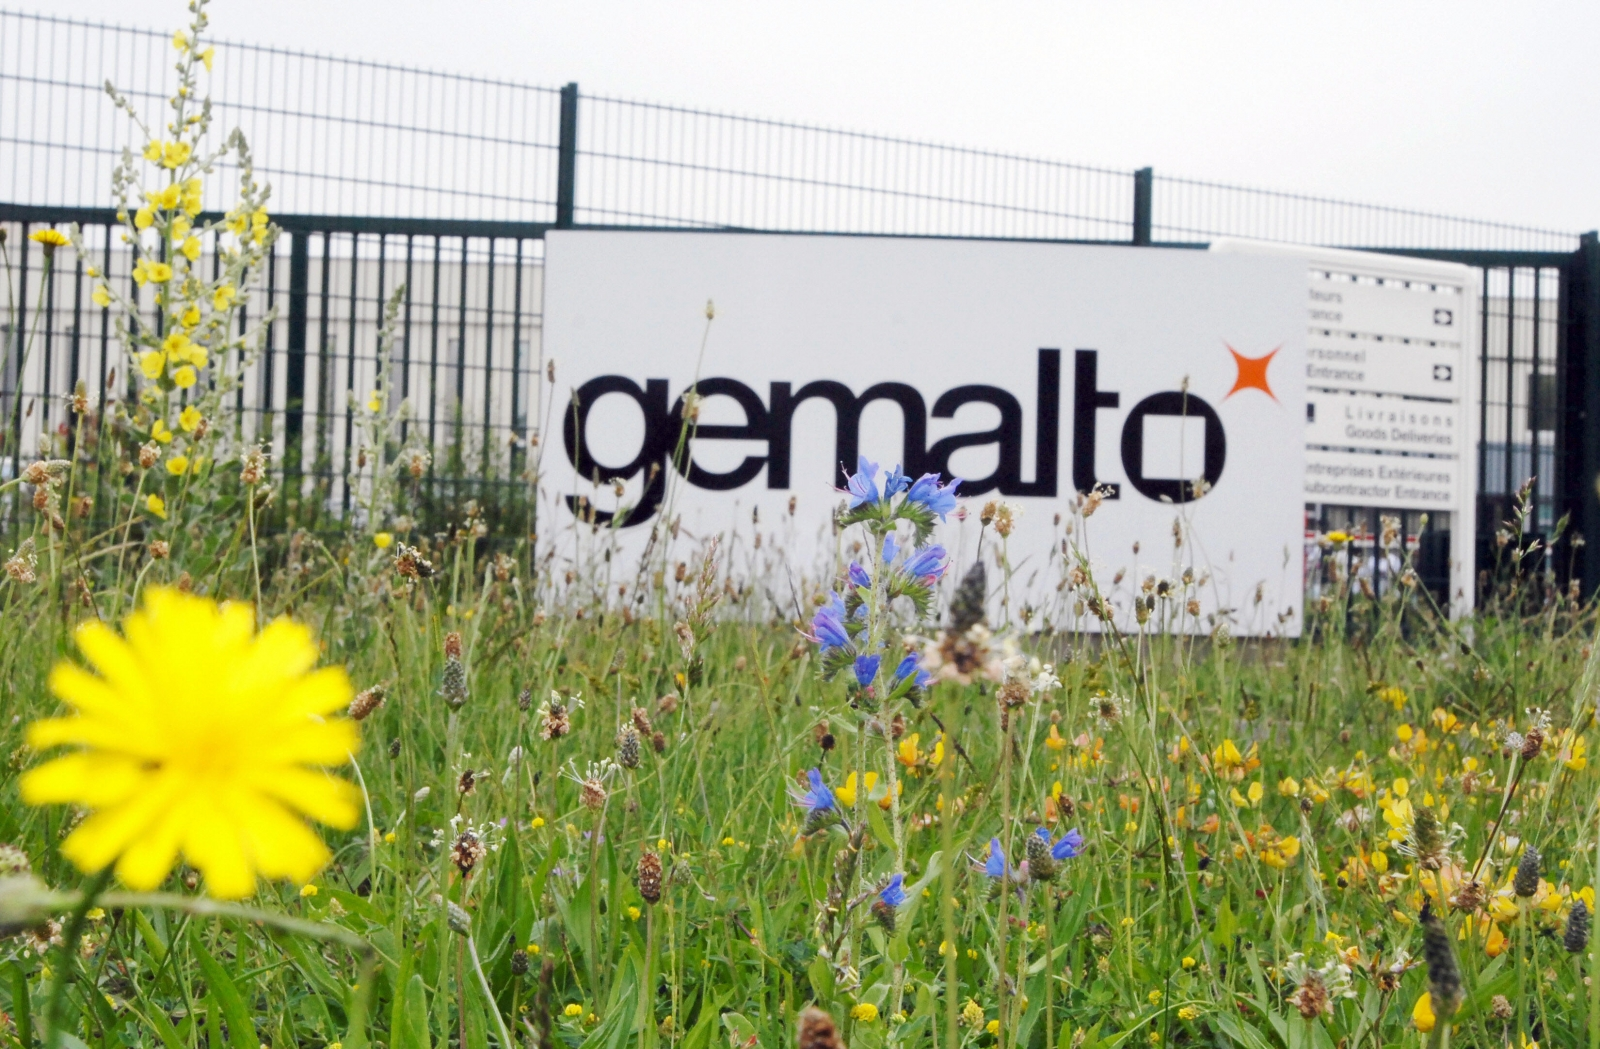 Gemalto SIM cards hacked by NSA and GCHQ